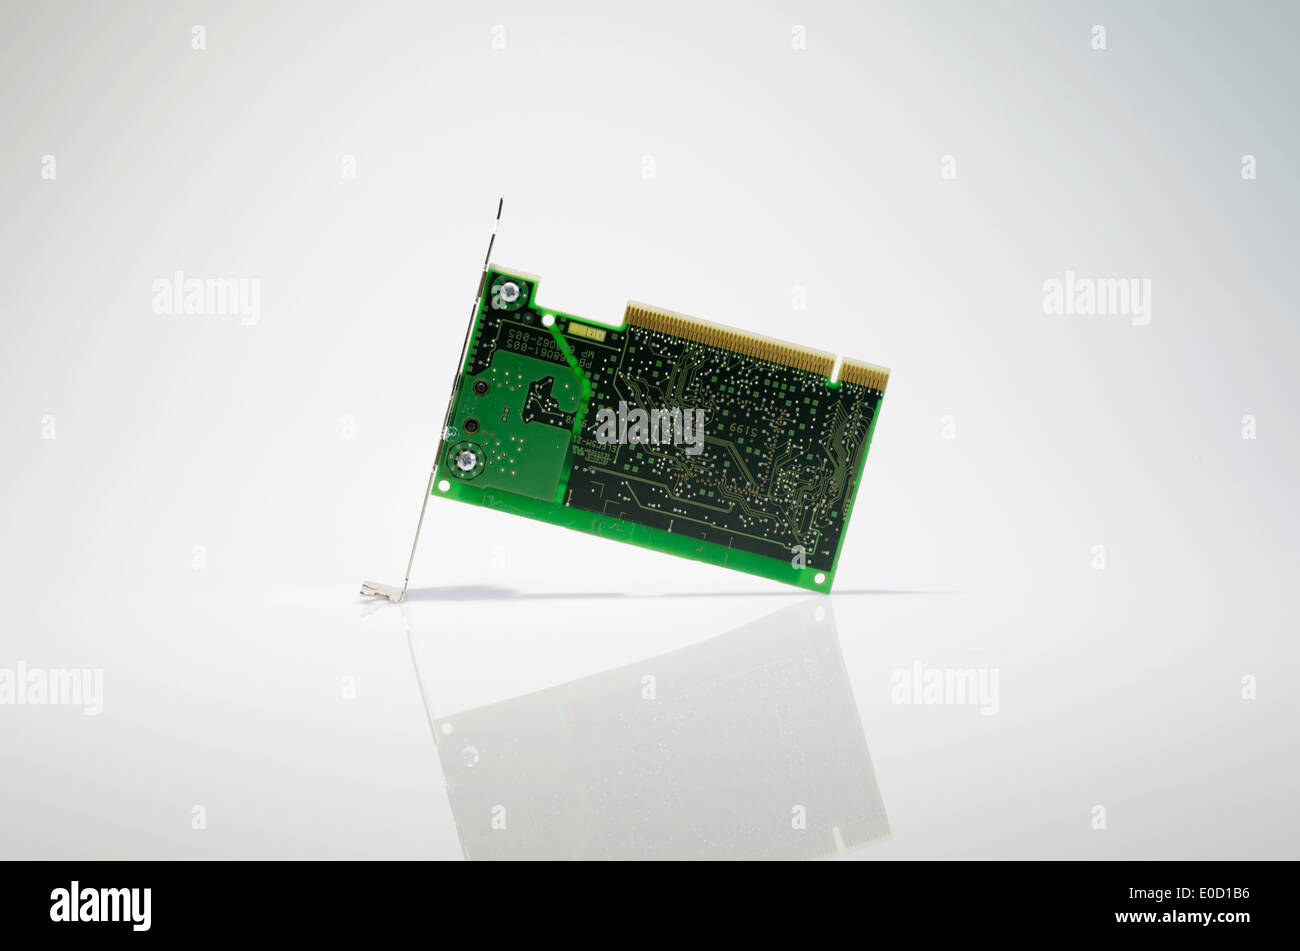 Lan card , a part of computer for lan connect to network and internet - Stock Image